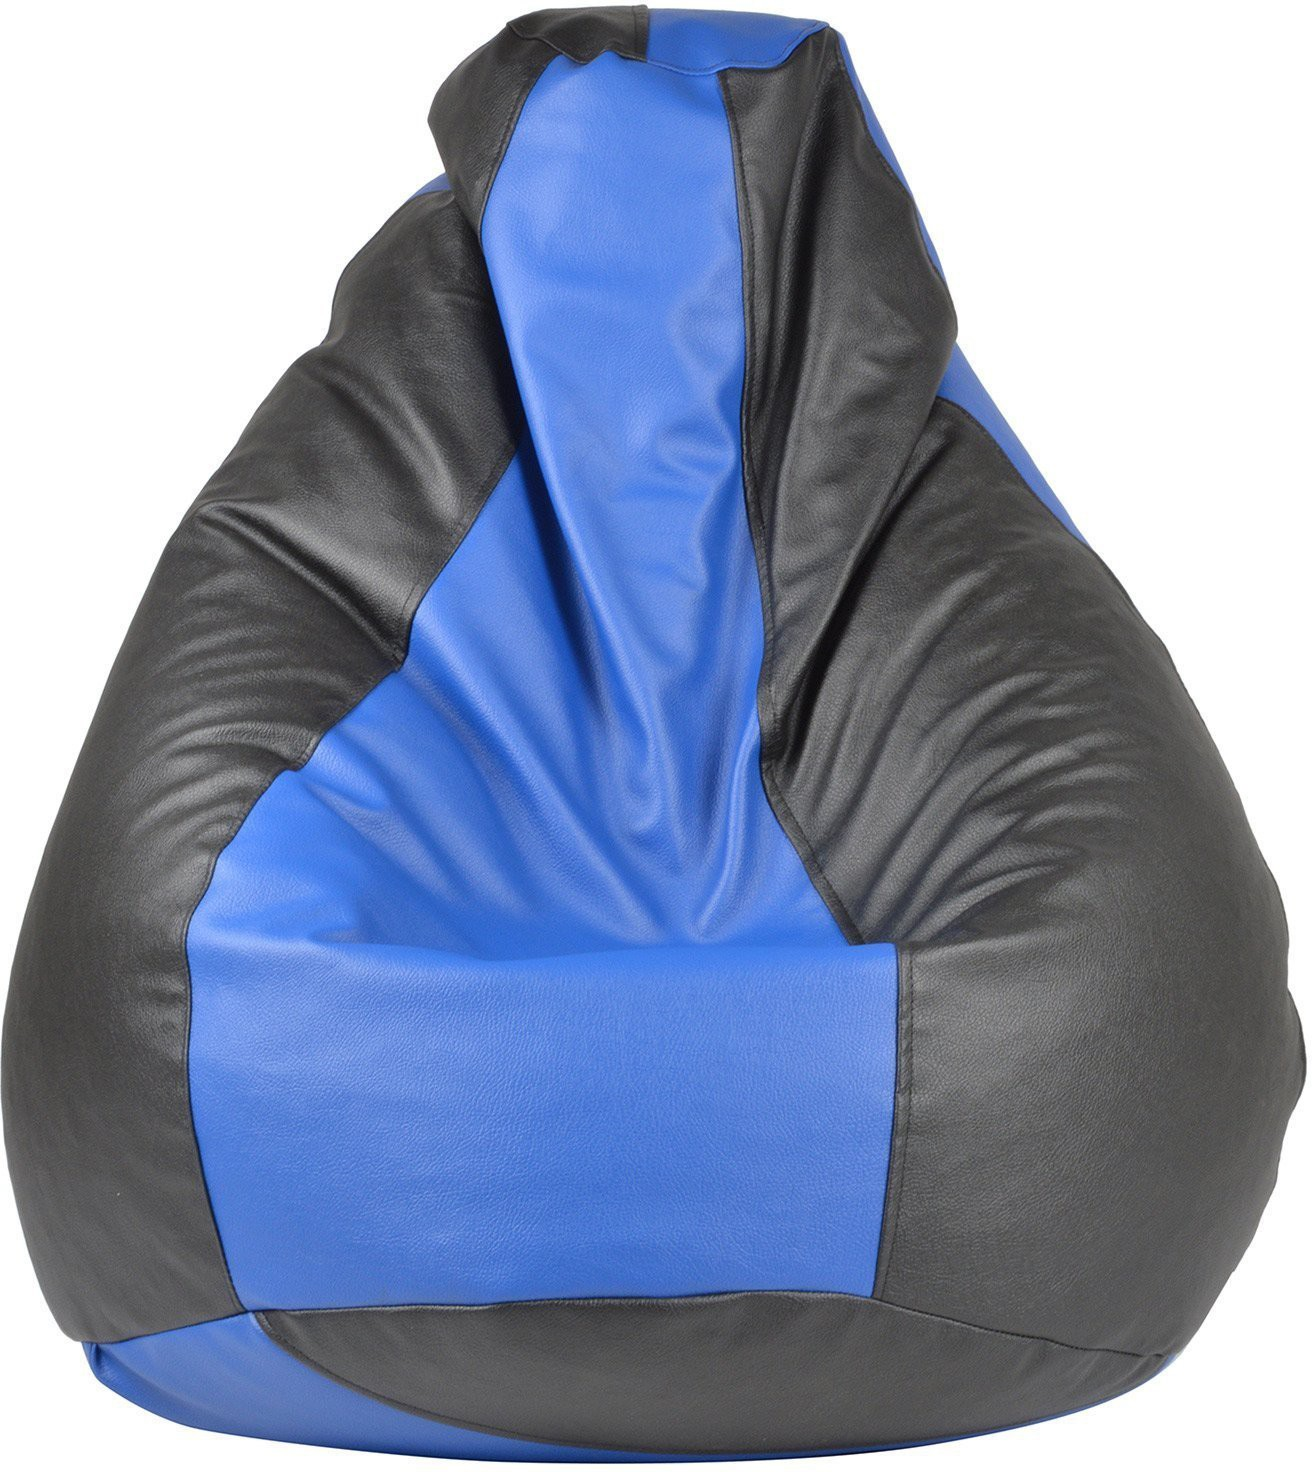 View Galaxy Decorz XL Bean Bag Cover(Black, Blue) Furniture (Galaxy Decorz)